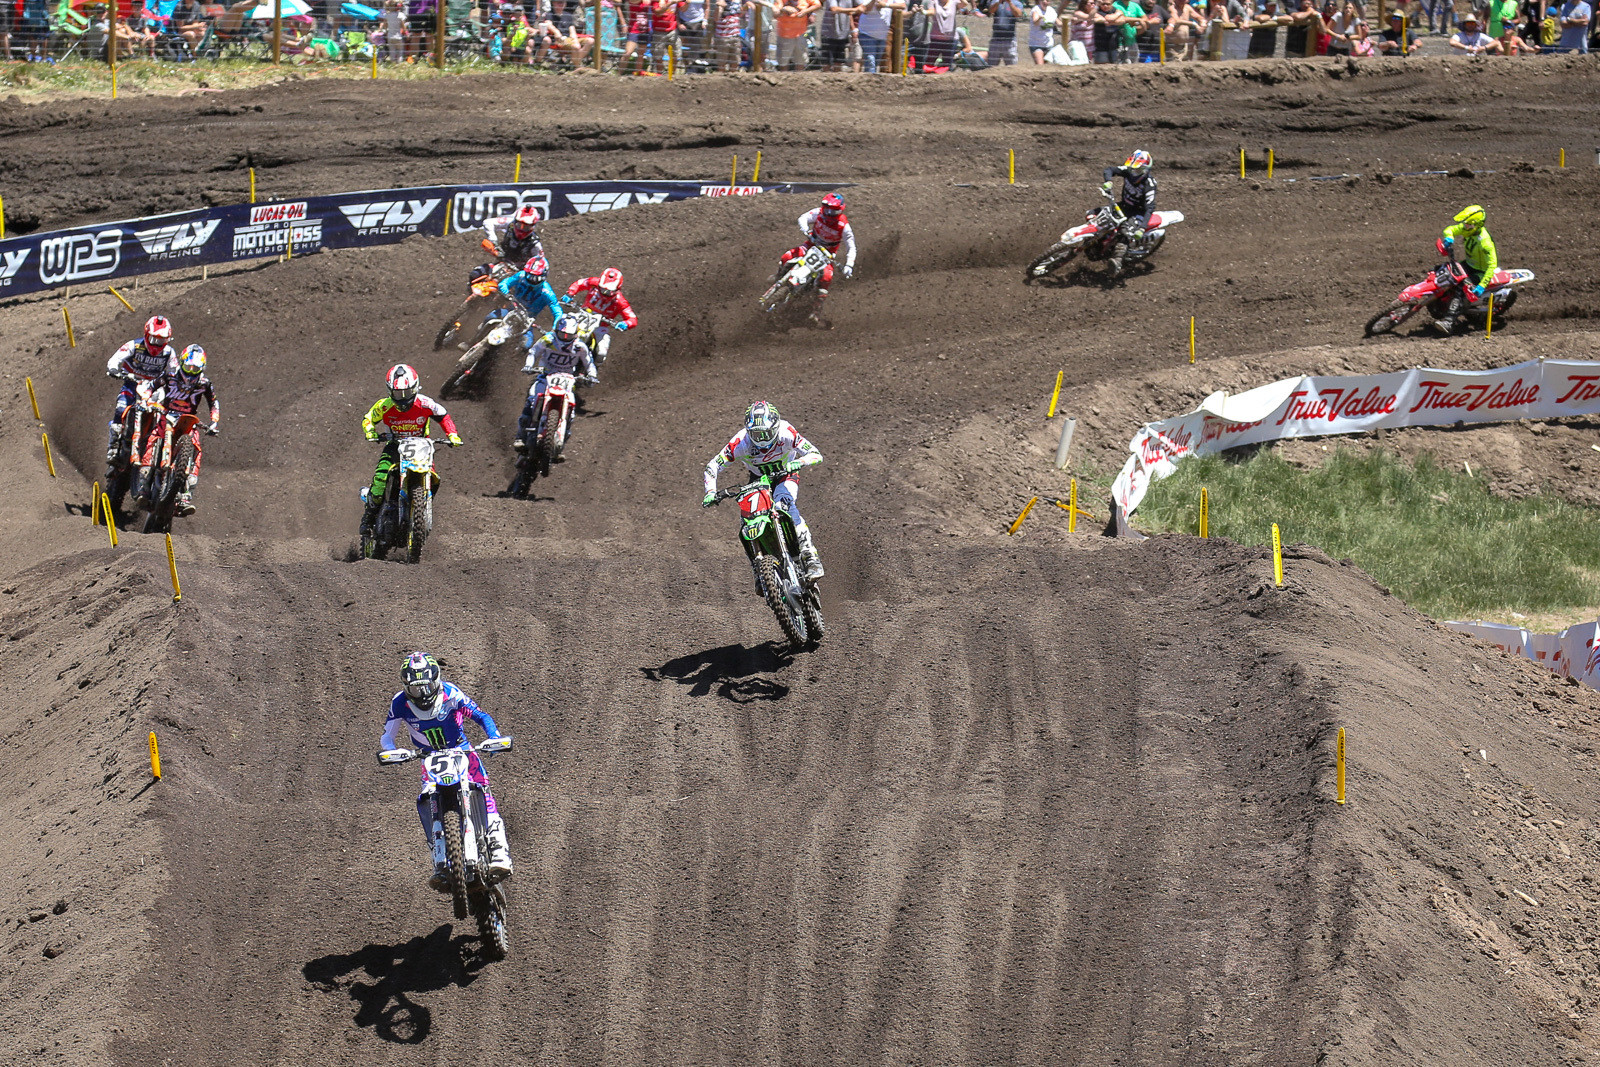 Things were settling in, with Barcia stretching the early lead, and the usual suspects trailing behind him.